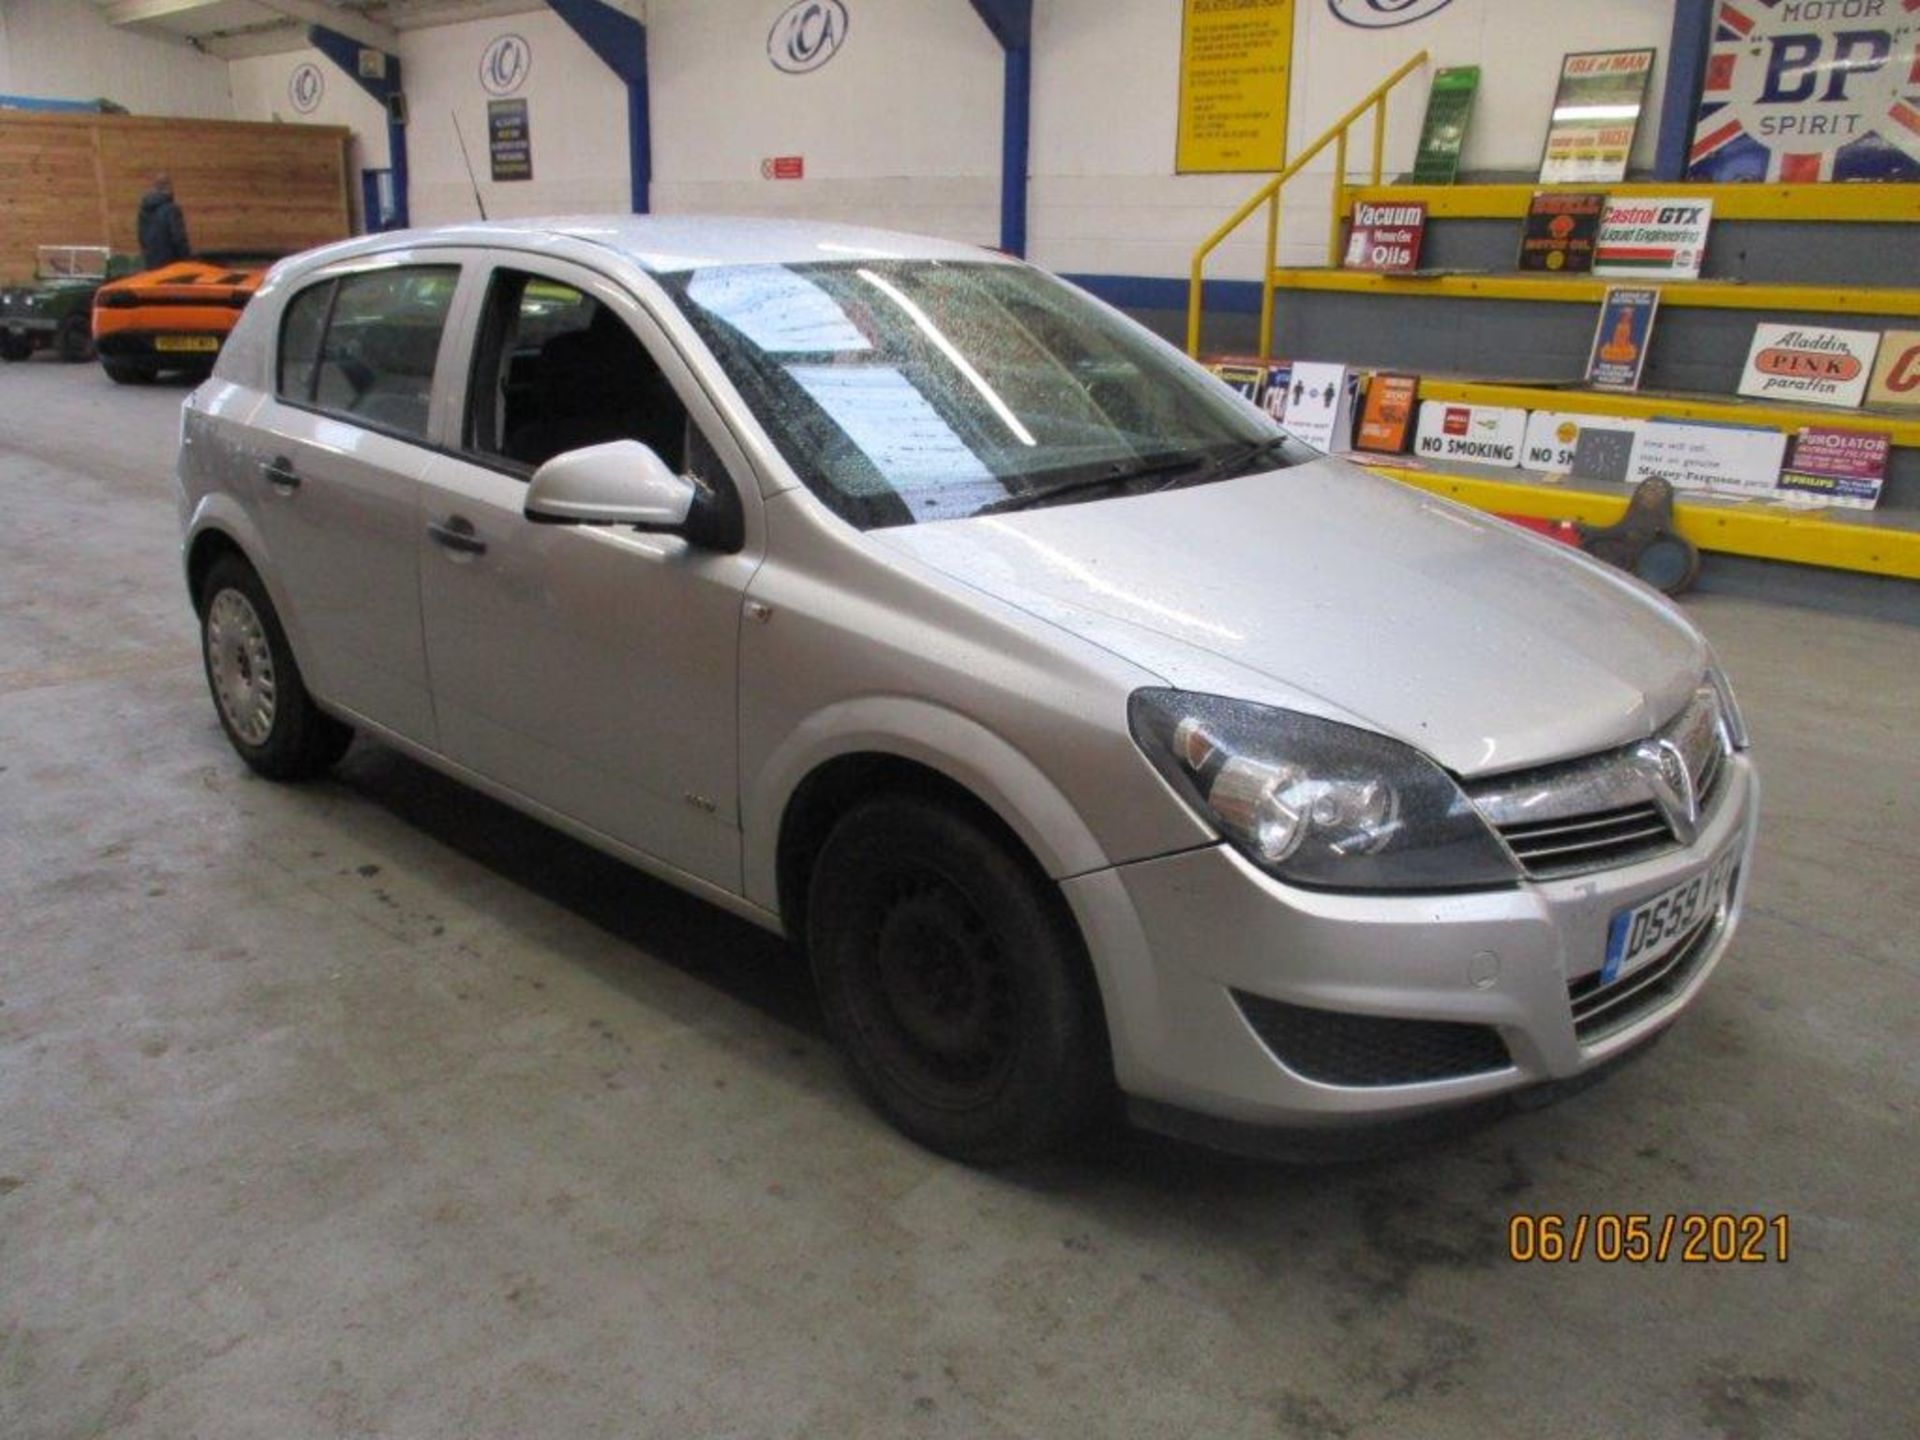 10 59 Vauxhall Astra Life - Image 3 of 14